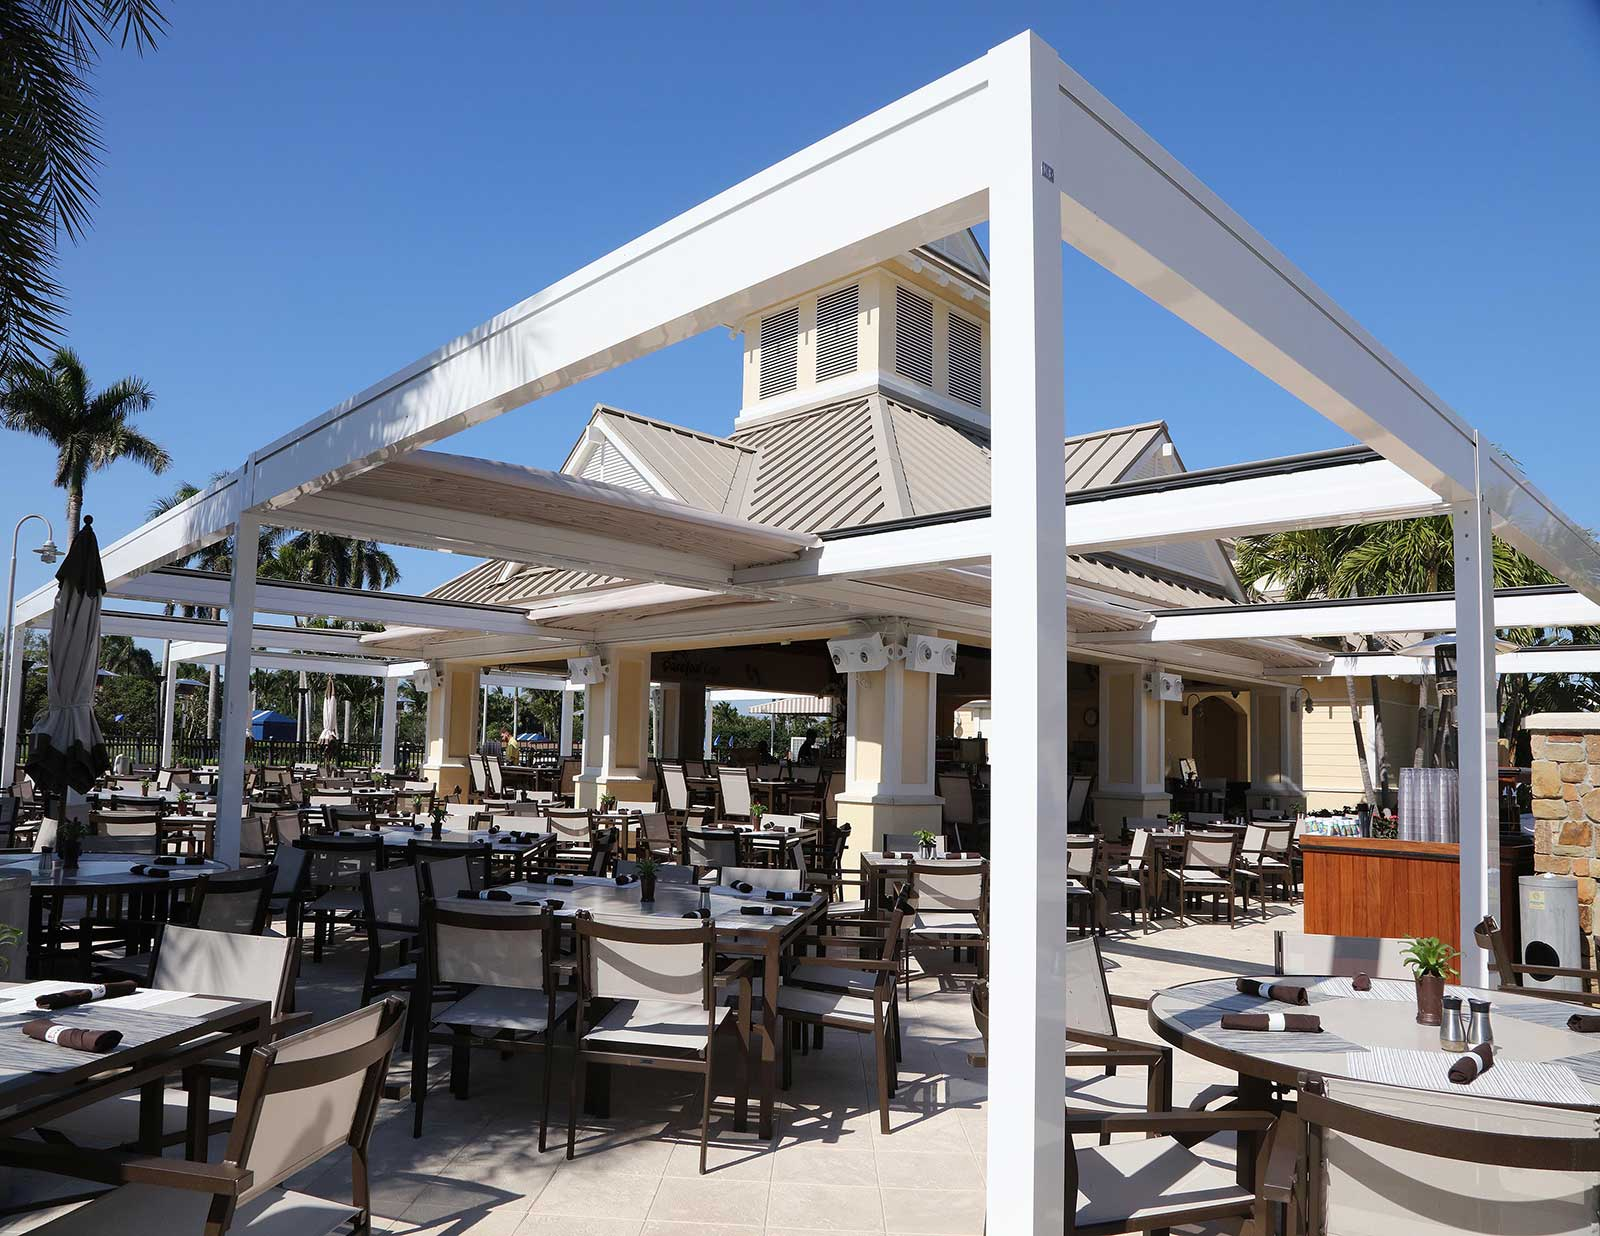 Commercial Awnings Denver - Best Awning Company